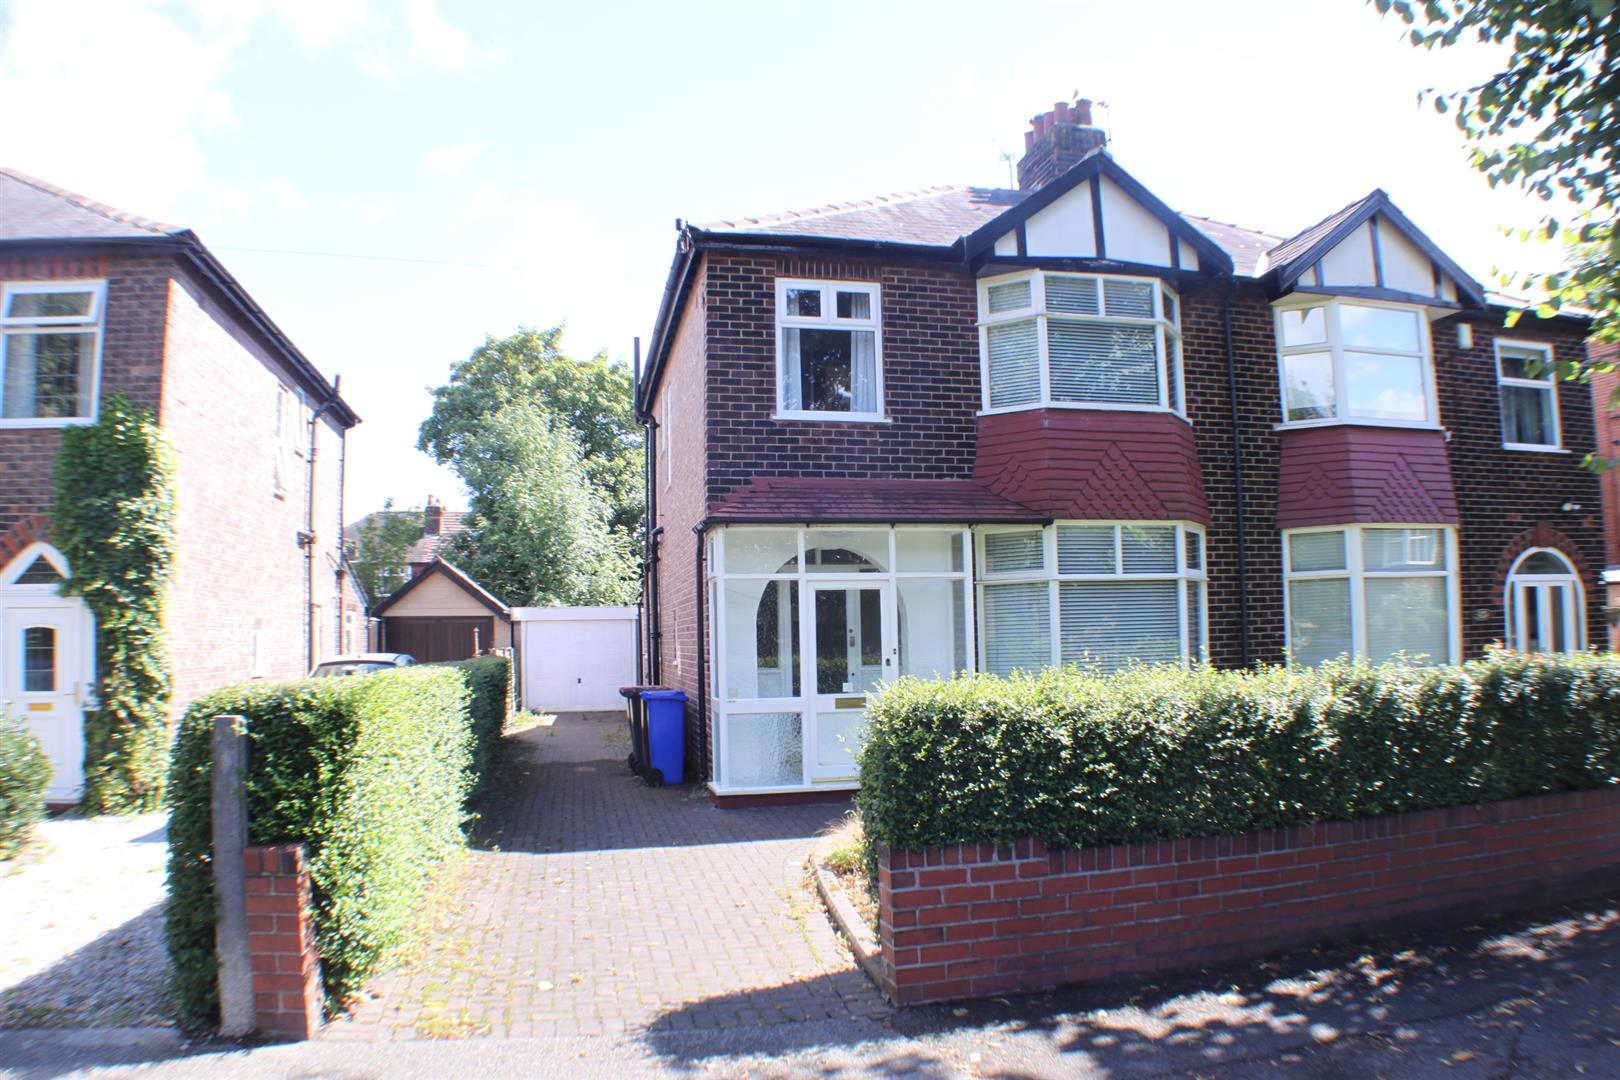 3 Bedrooms Semi Detached House for sale in Park Road, Salford